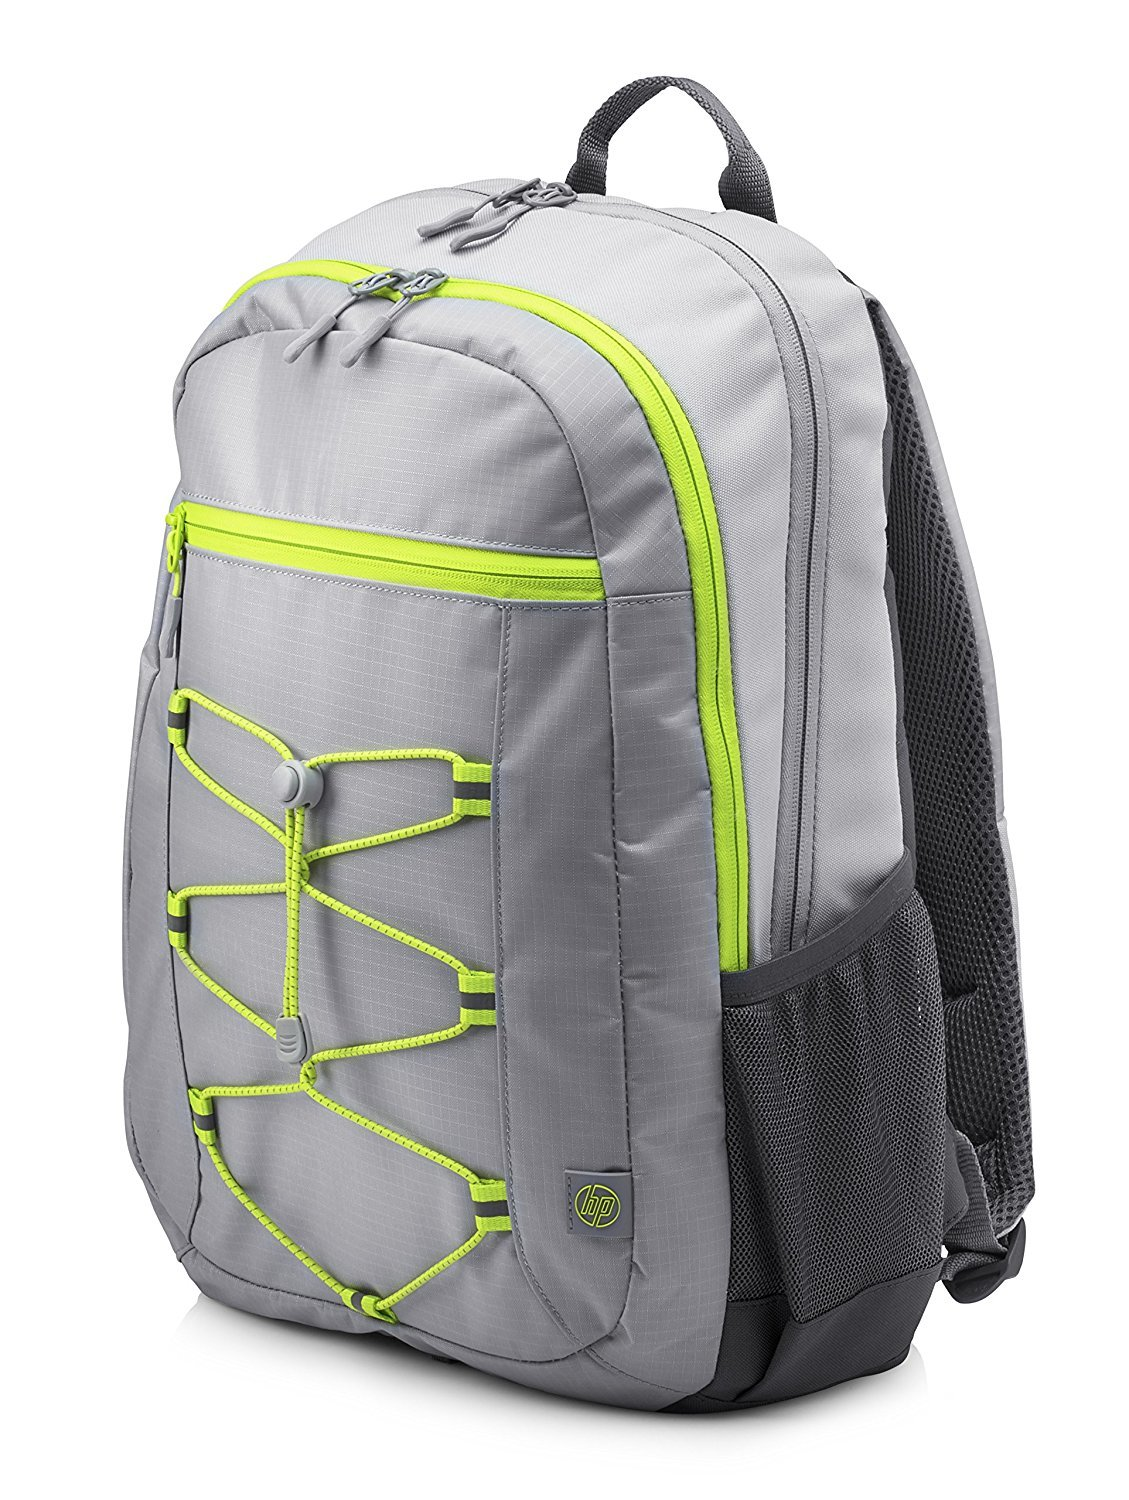 """HP 15.6"""" Active - Laptop Backpack (Grey/Green) image"""